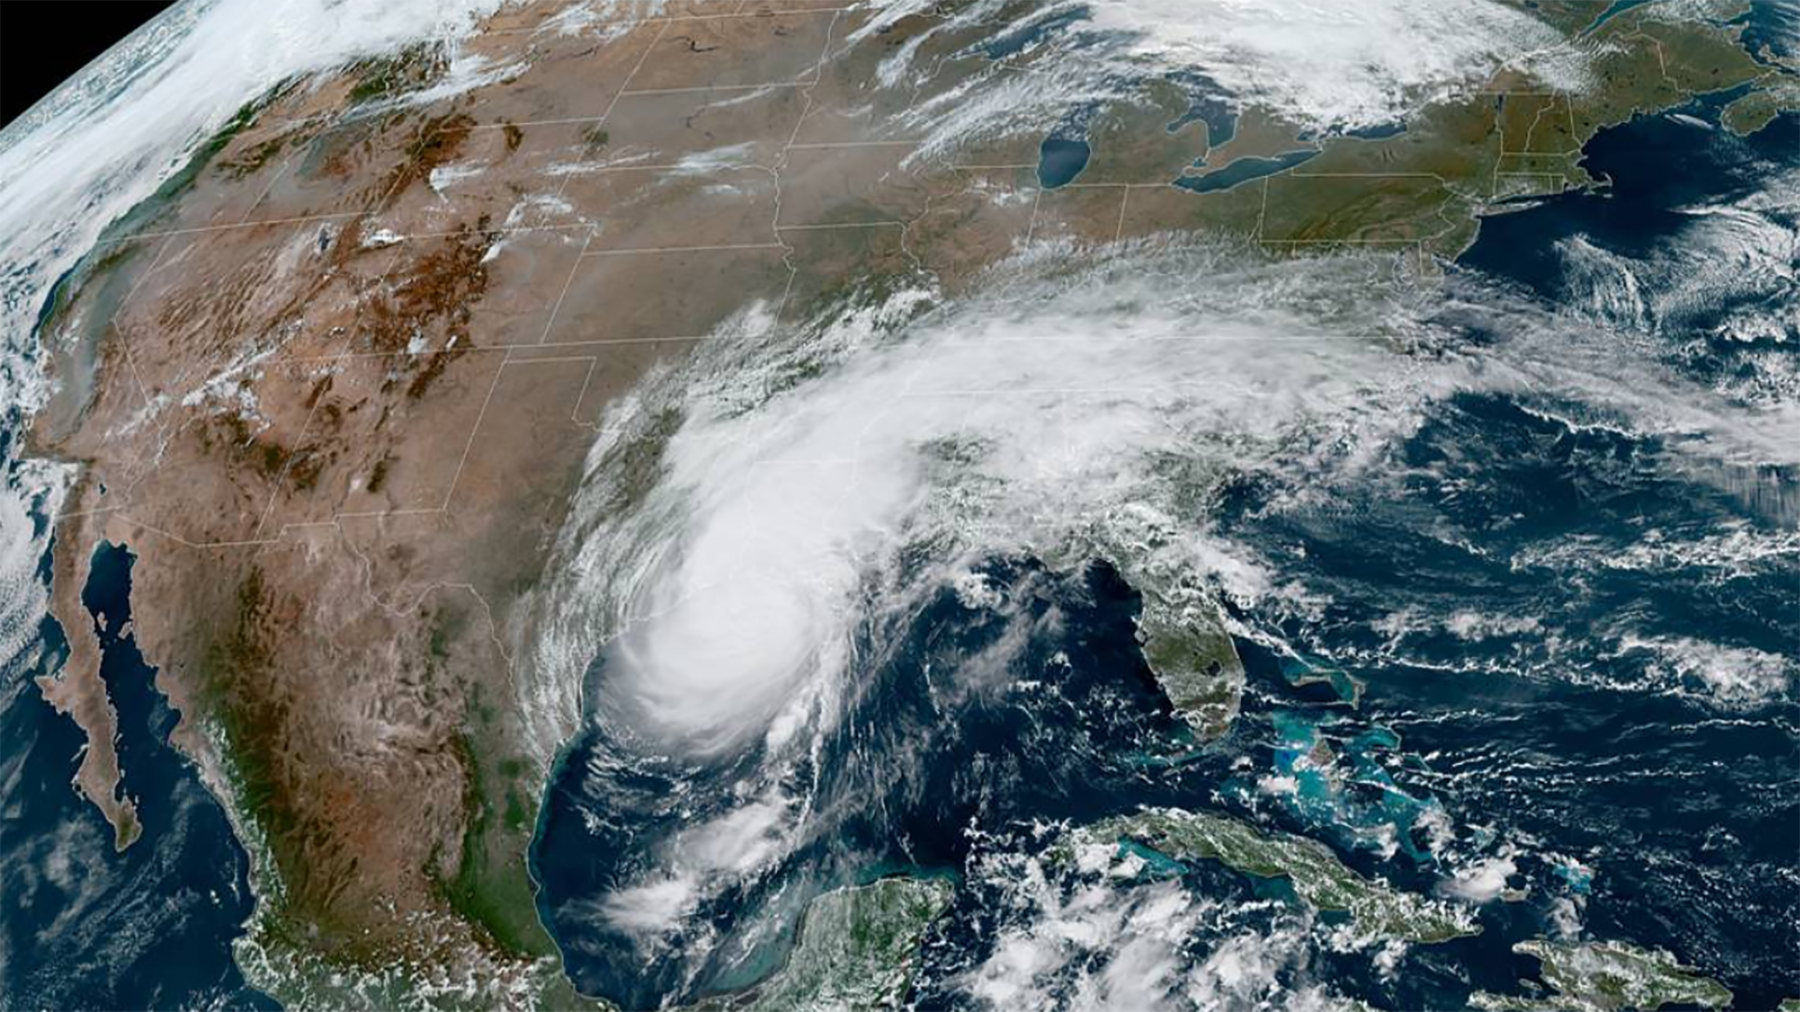 Hurricane Delta swirls over the Gulf of Mexico Friday, Oct. 9, 2020. The region has been struck by multiple storms this year. (NOAA Satellite Image)